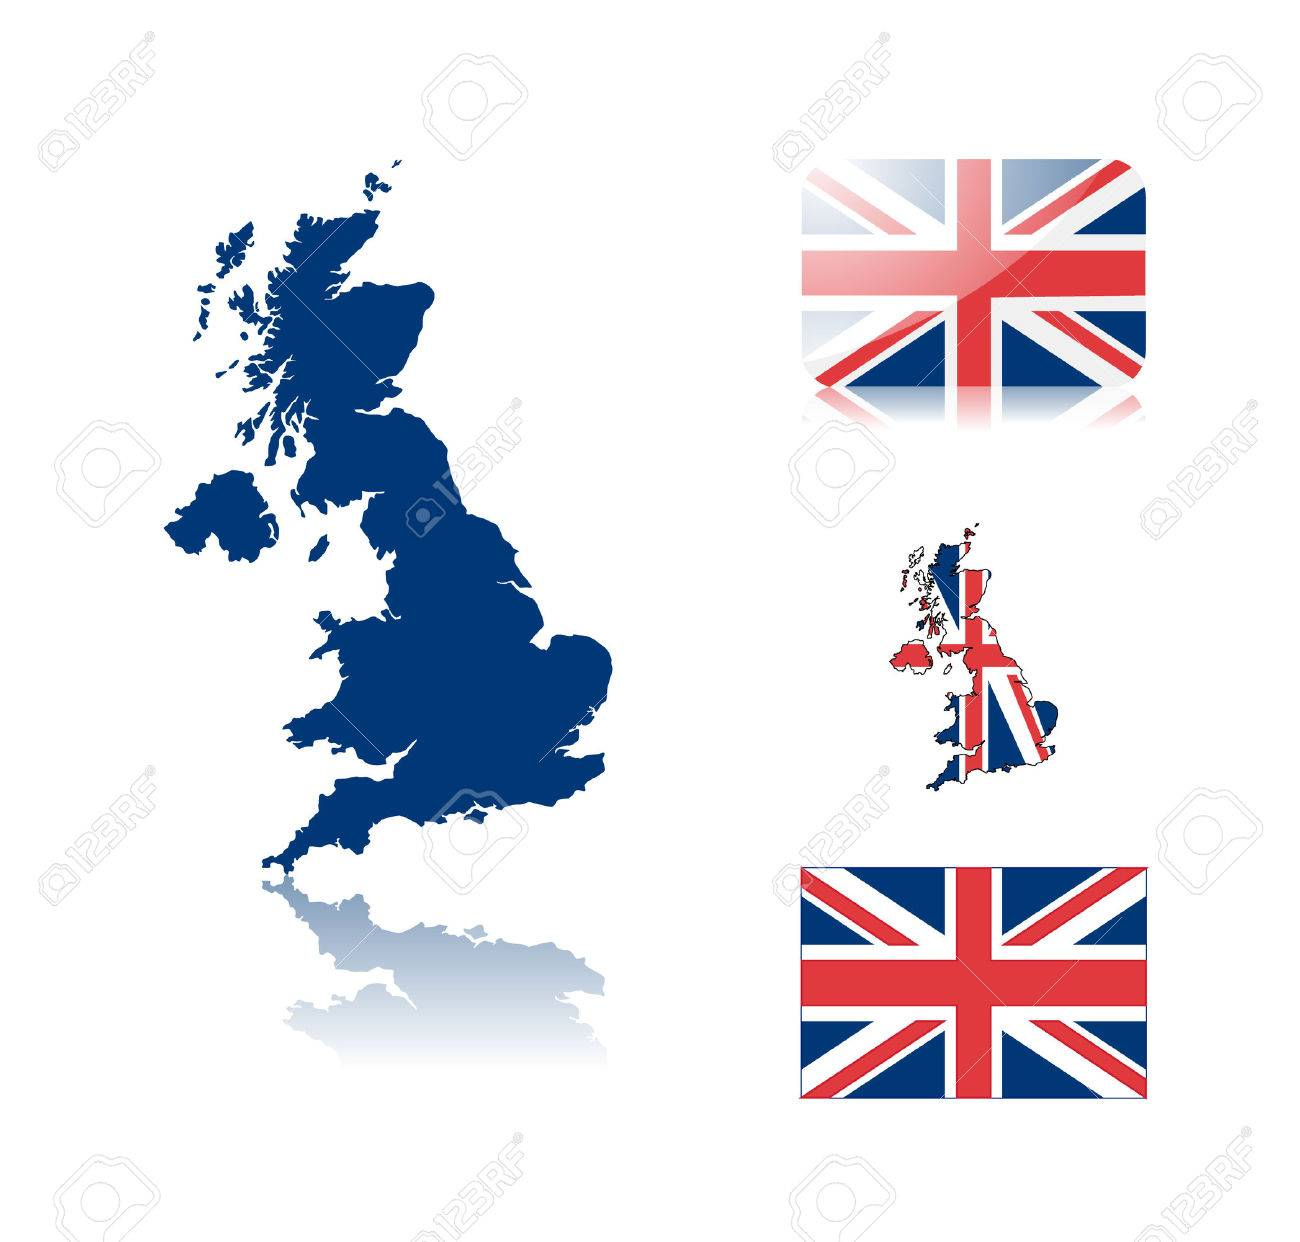 British map including: map with reflection, map in flag colors, glossy and normal flag of United kingdom. Stock Vector - 6350719